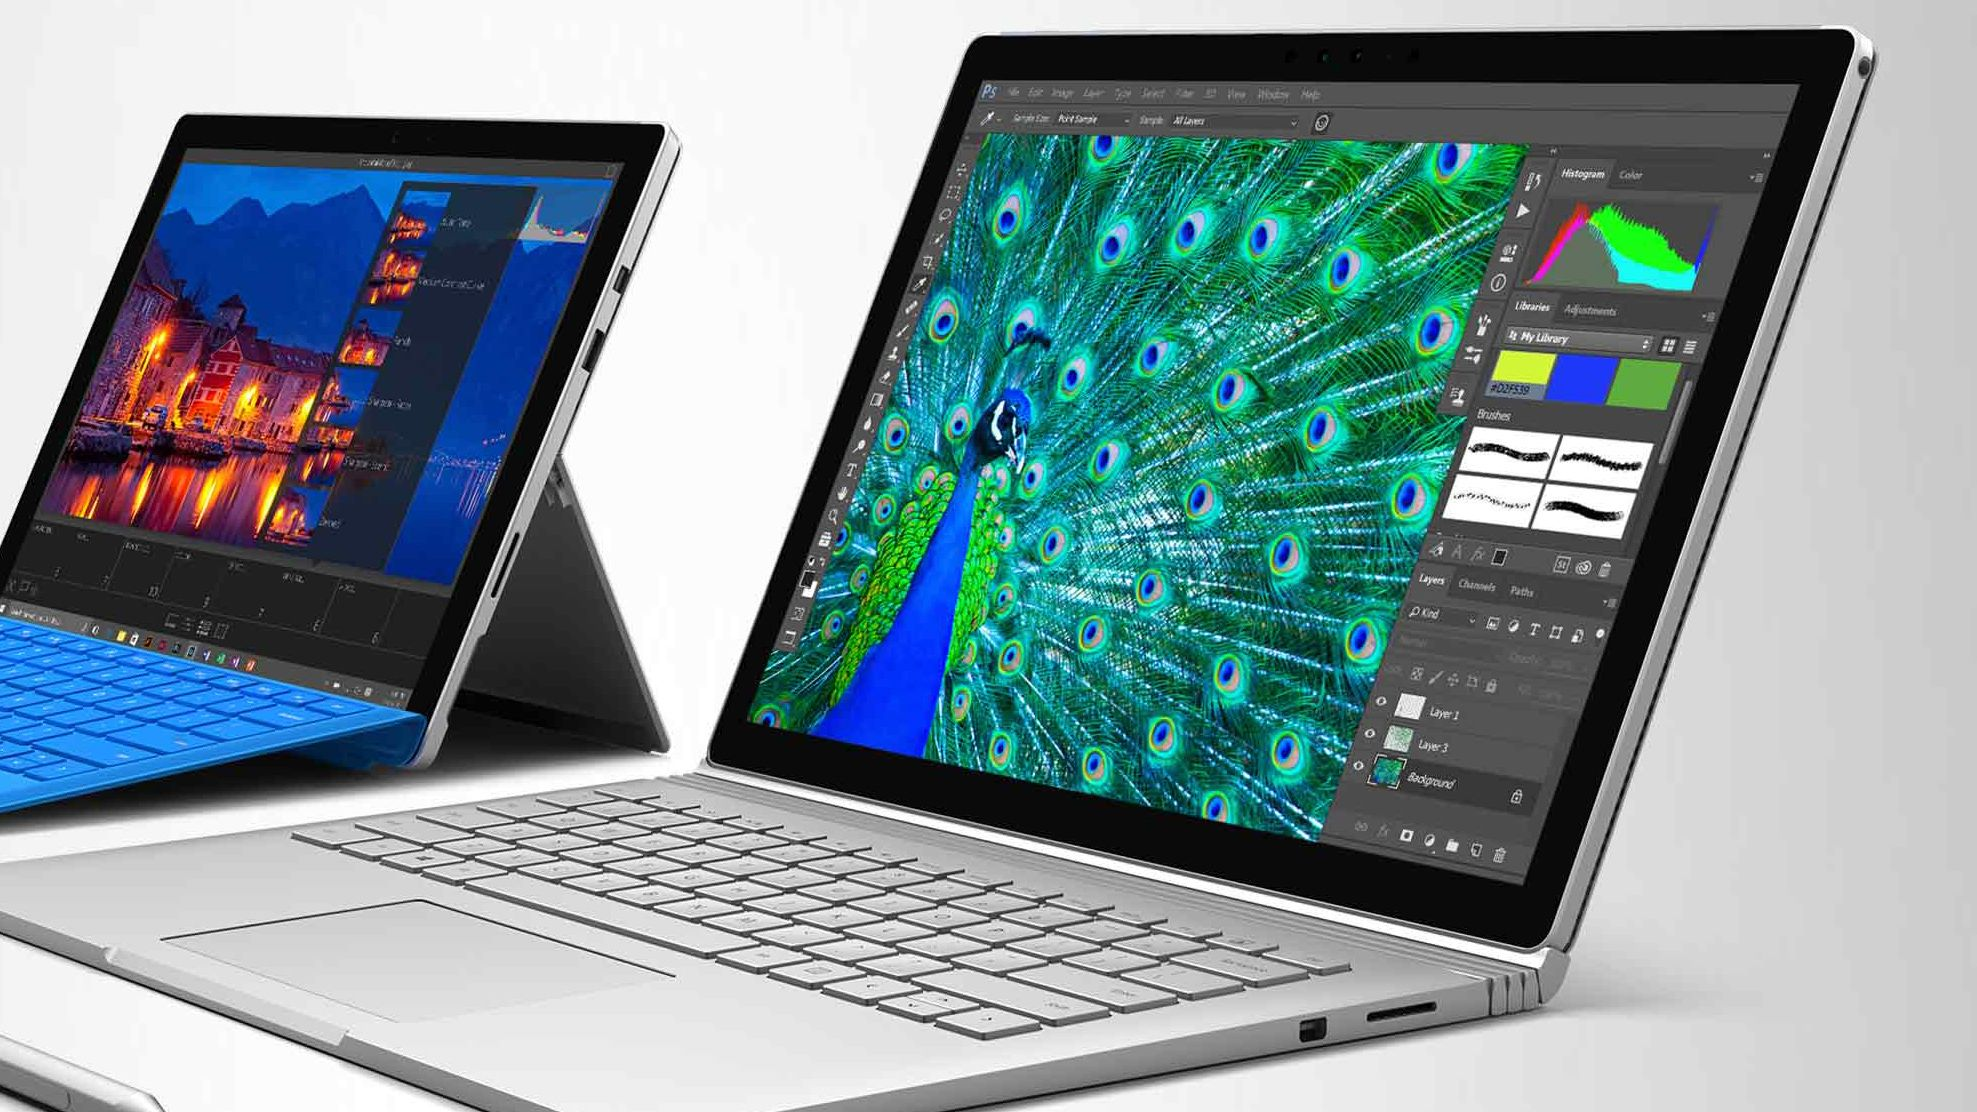 The best laptops for graphic design in 2019 | OTHER